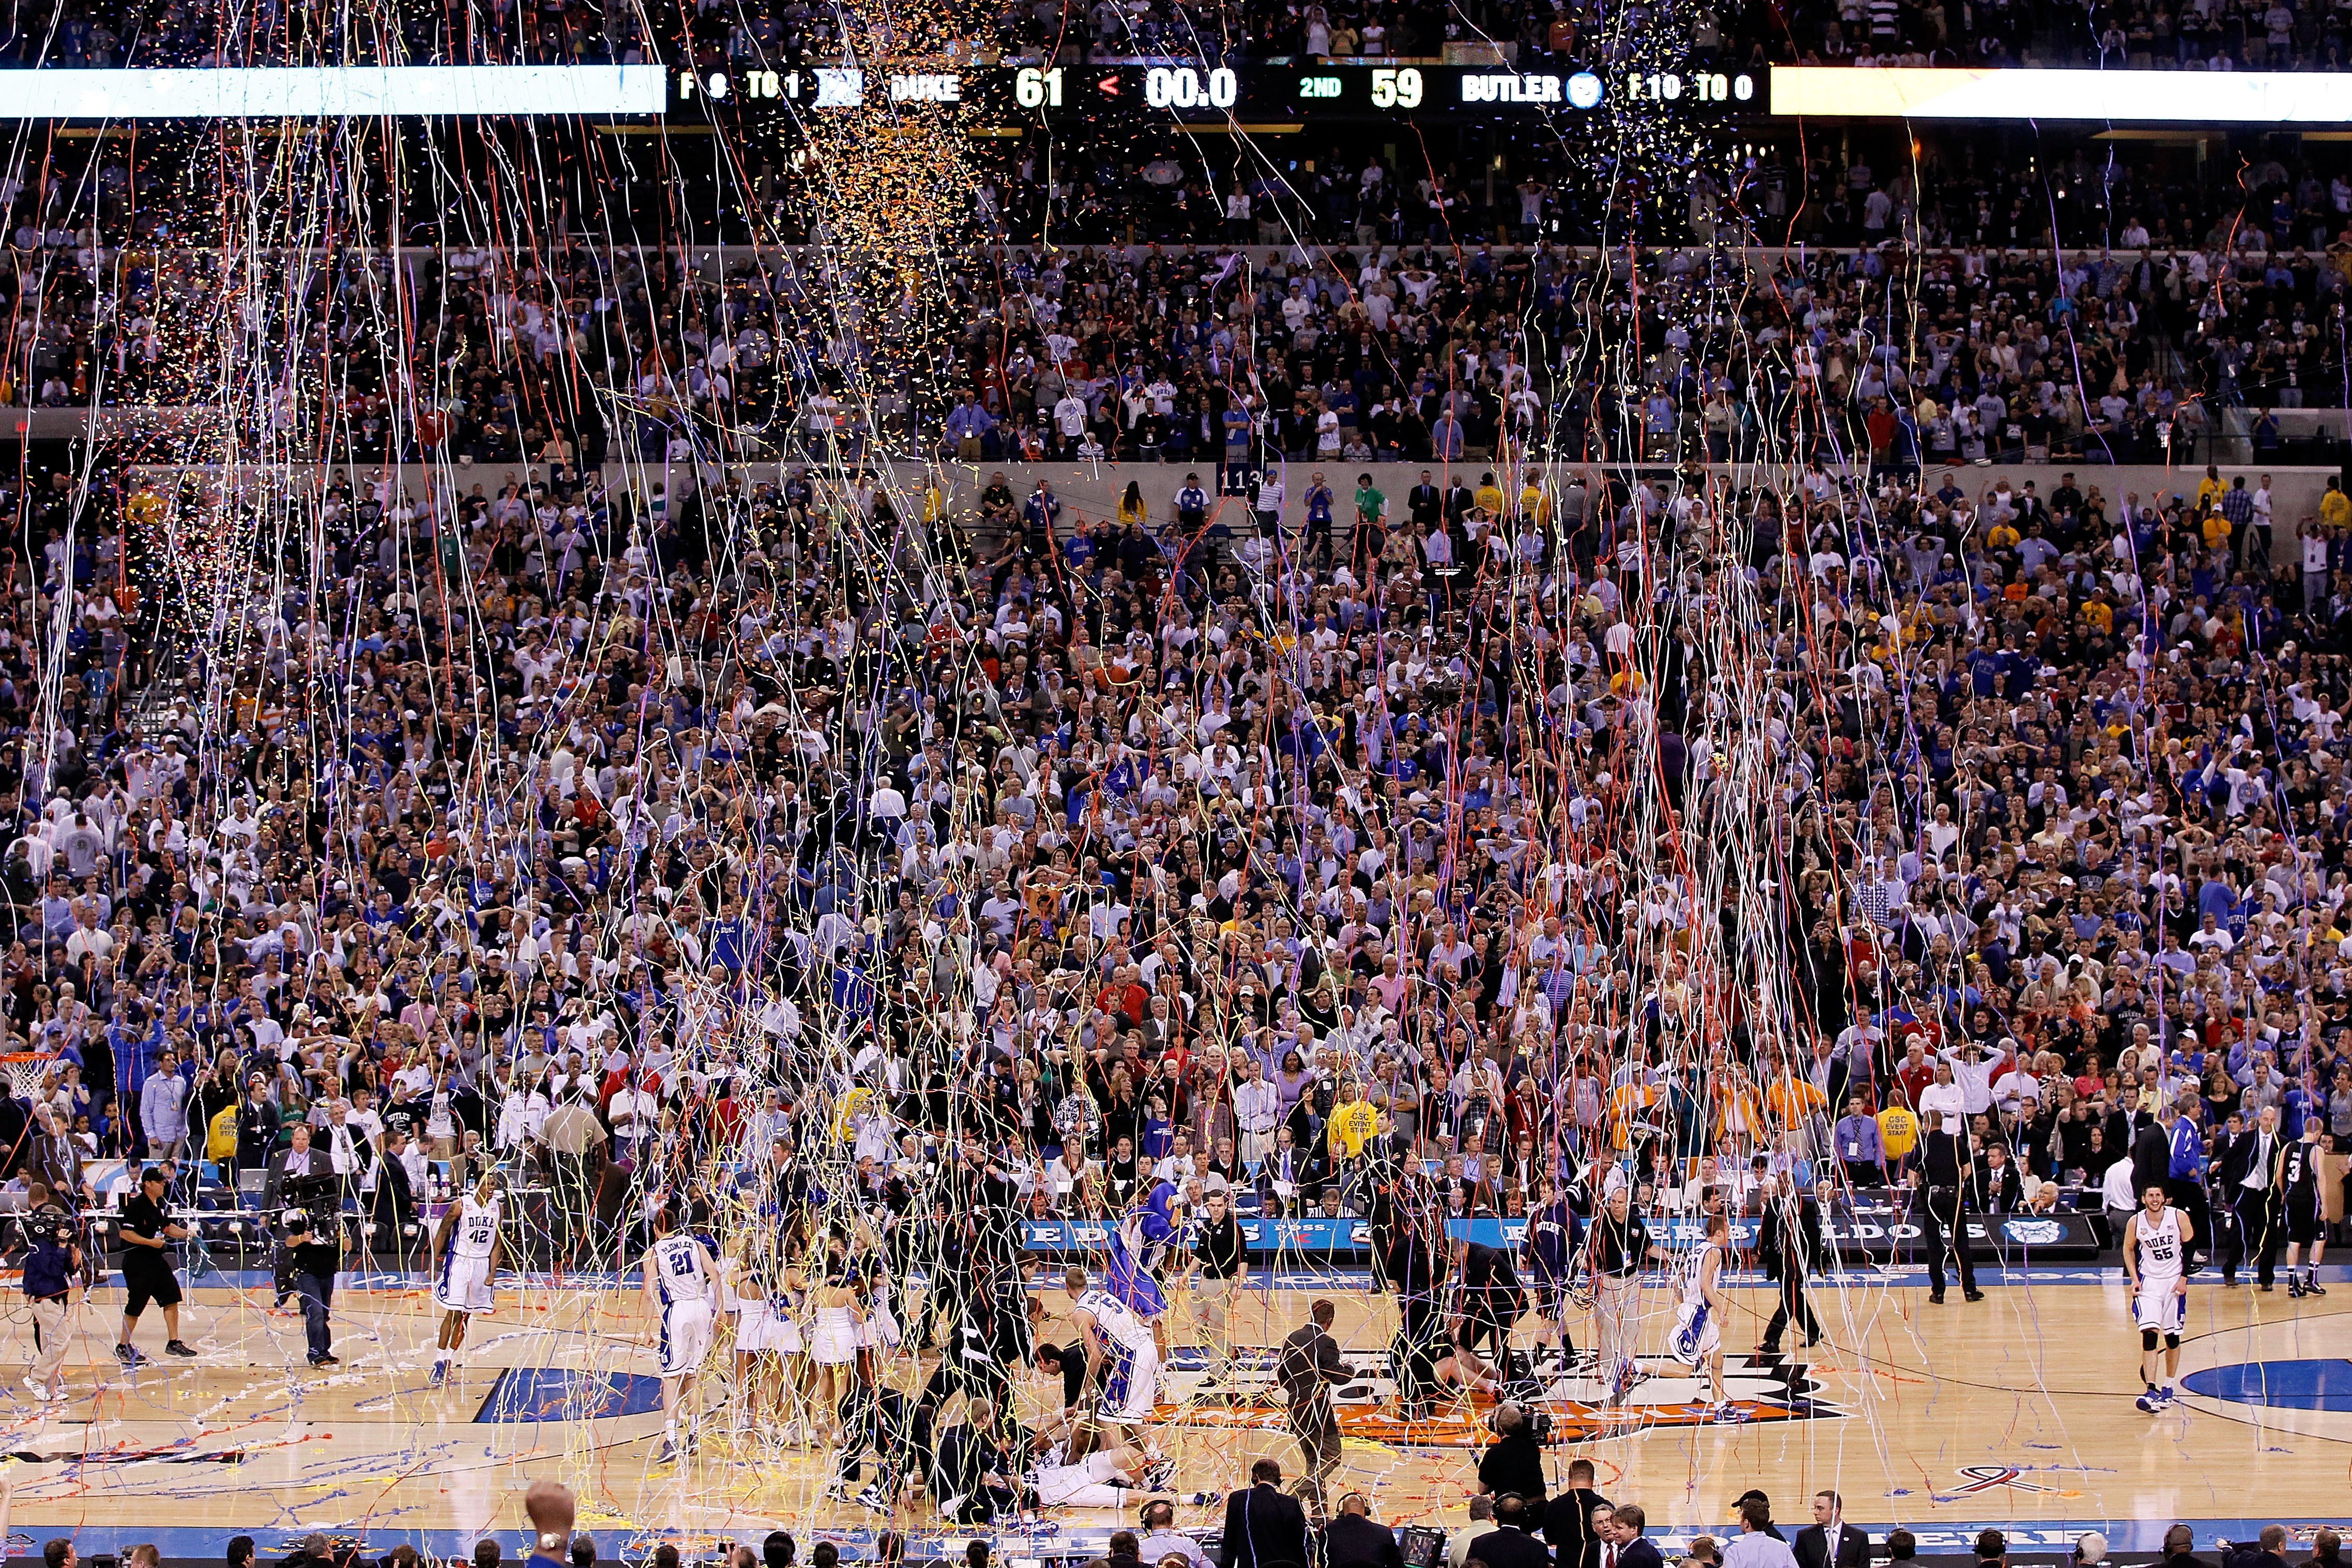 INDIANAPOLIS - APRIL 05:  Confetti falls as the Duke Blue Devils celebrate after they won 61-59 against the Butler Bulldogs during the 2010 NCAA Division I Men's Basketball National Championship game at Lucas Oil Stadium on April 5, 2010 in Indianapolis,